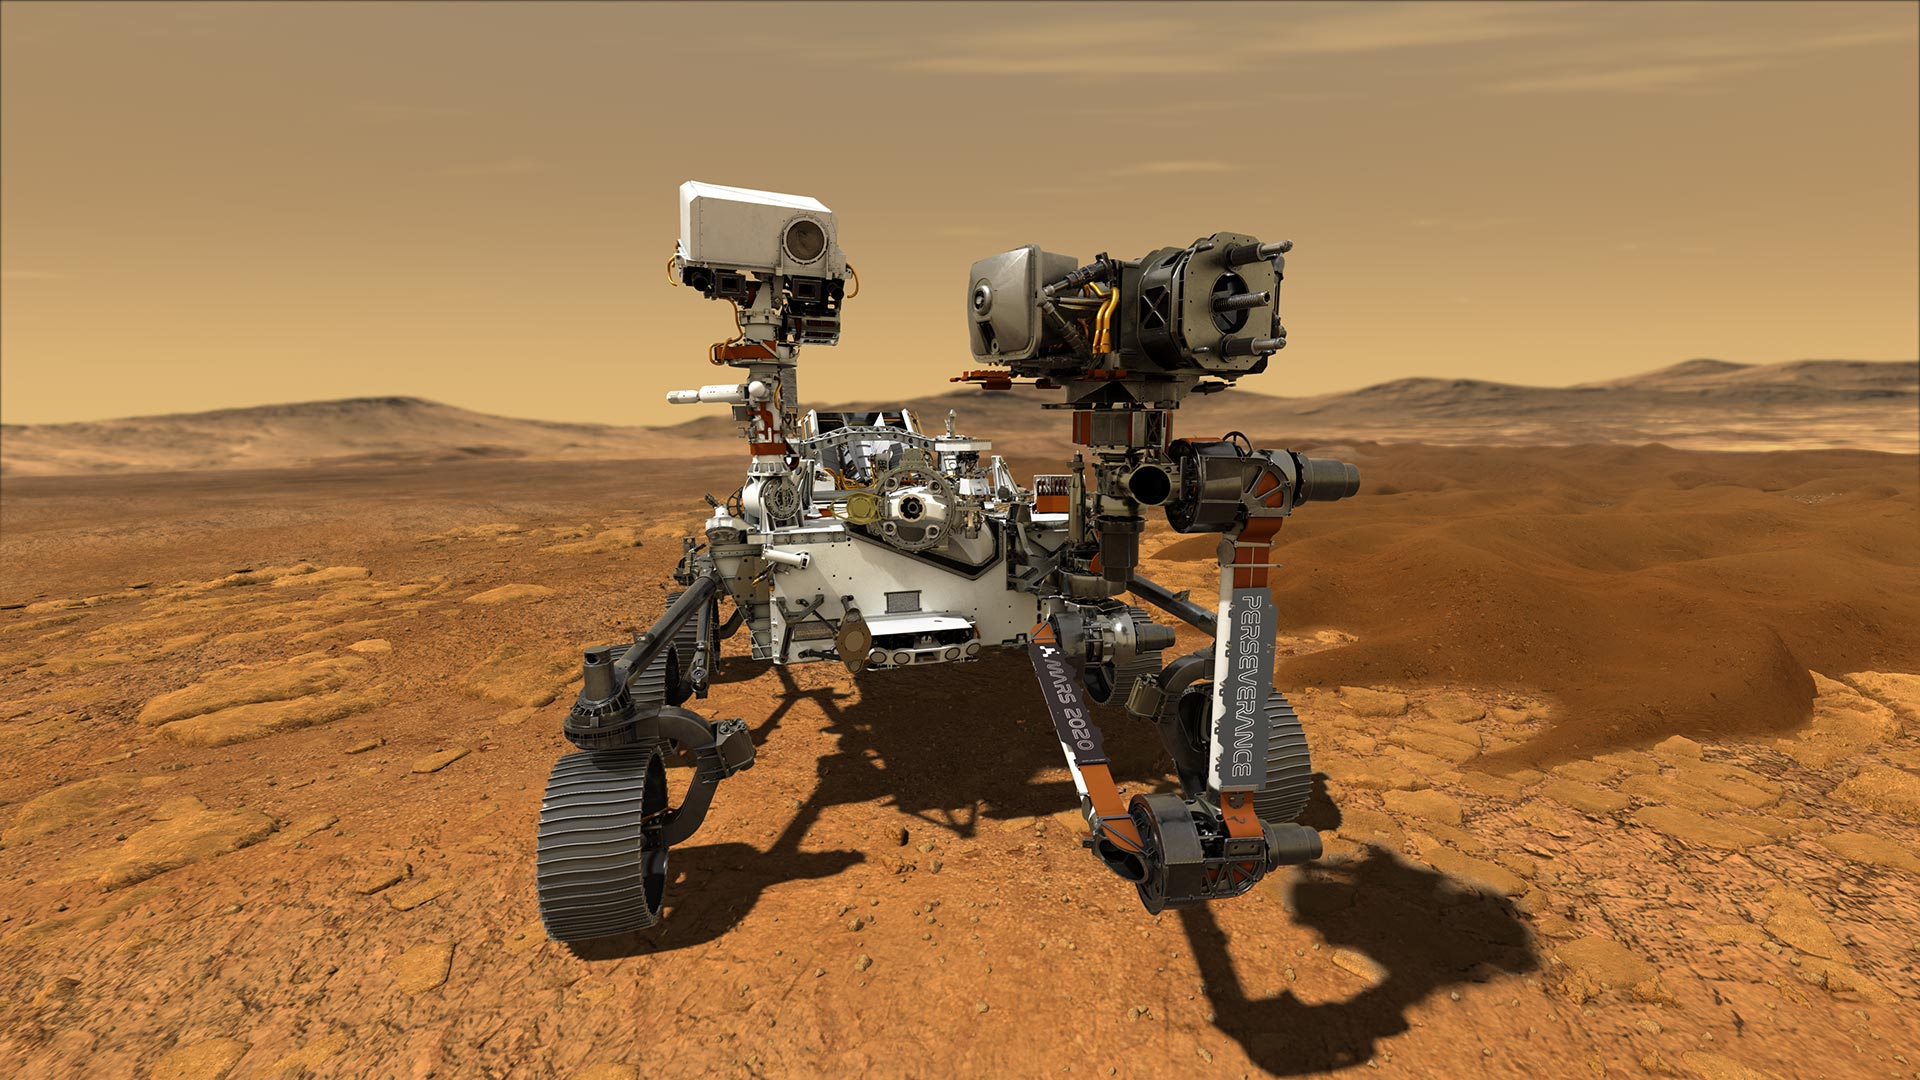 NASA Converting Carbon-Dioxide to Oxygen on Mars